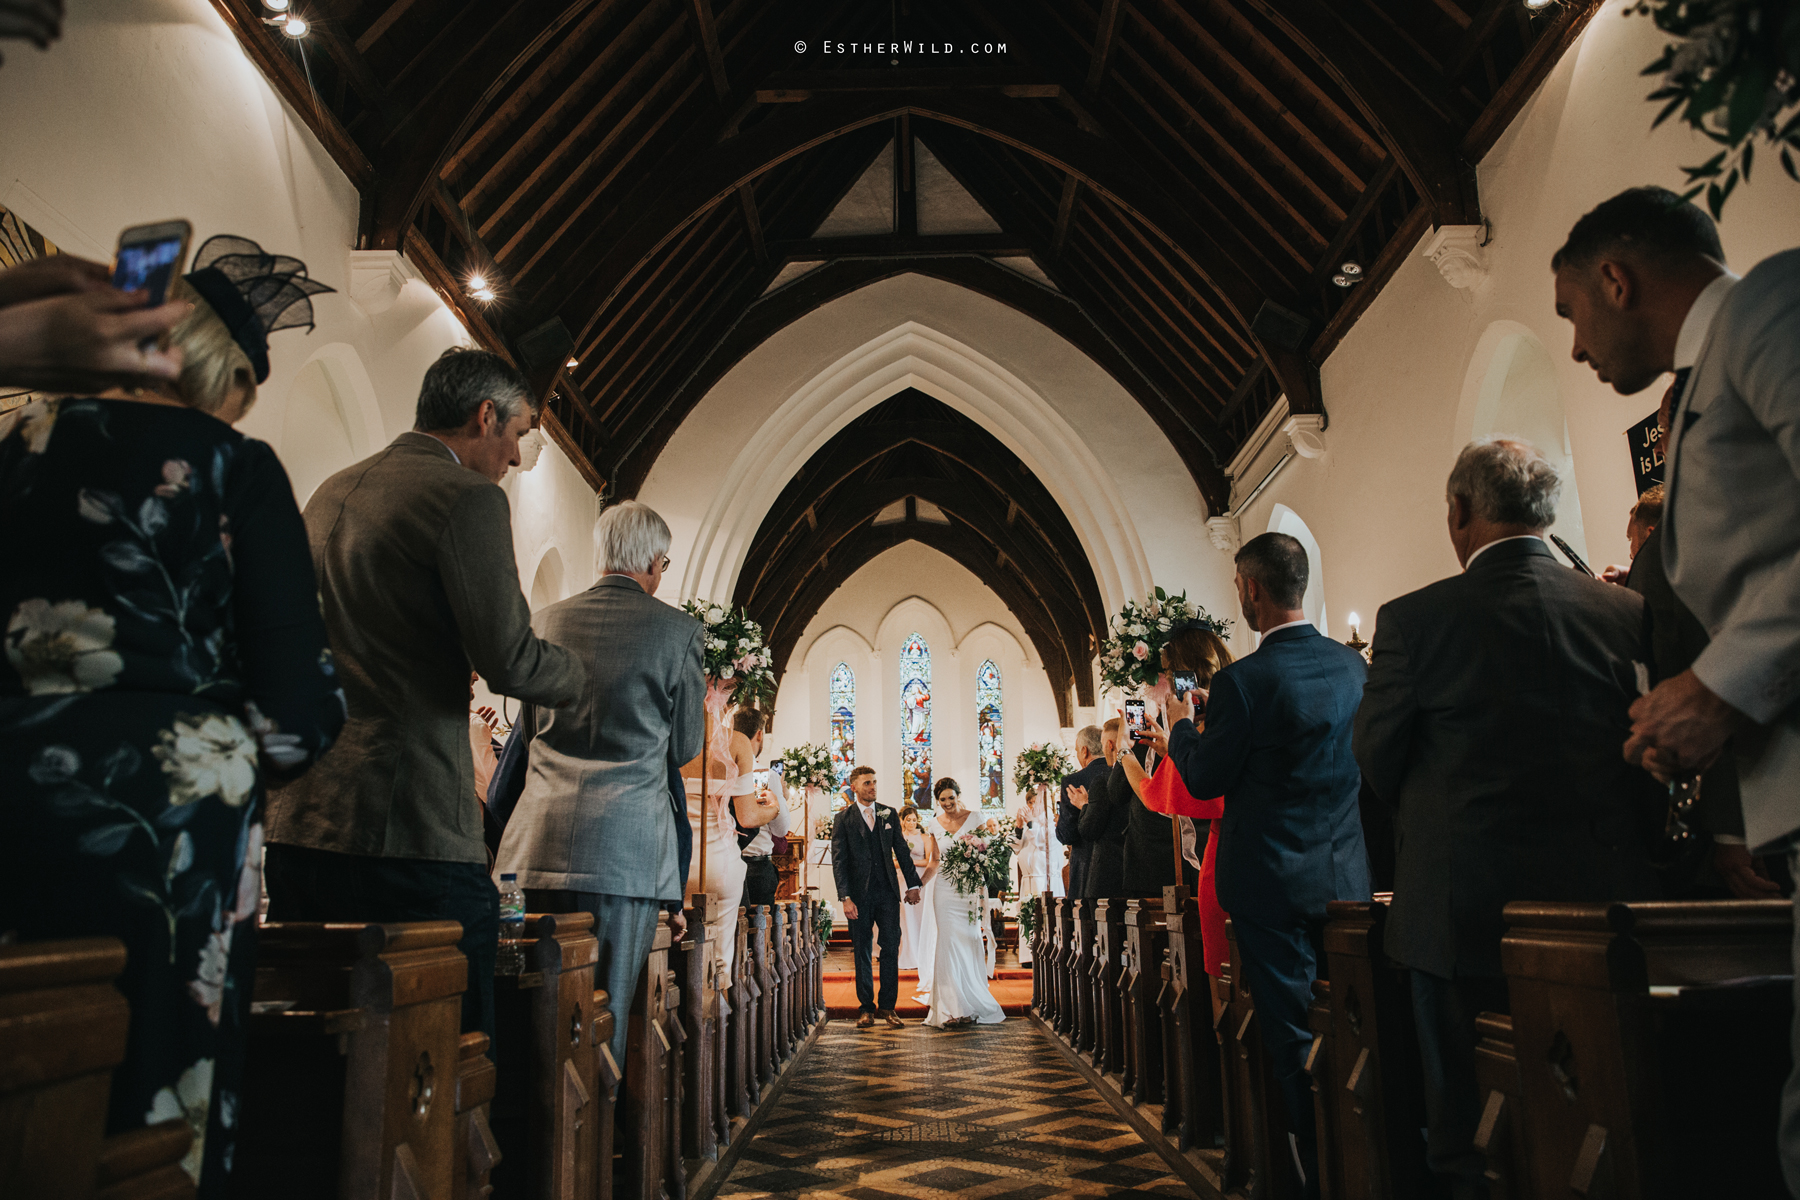 Wootton_Wedding_Copyright_Esther_Wild_Photographer_IMG_1183.jpg